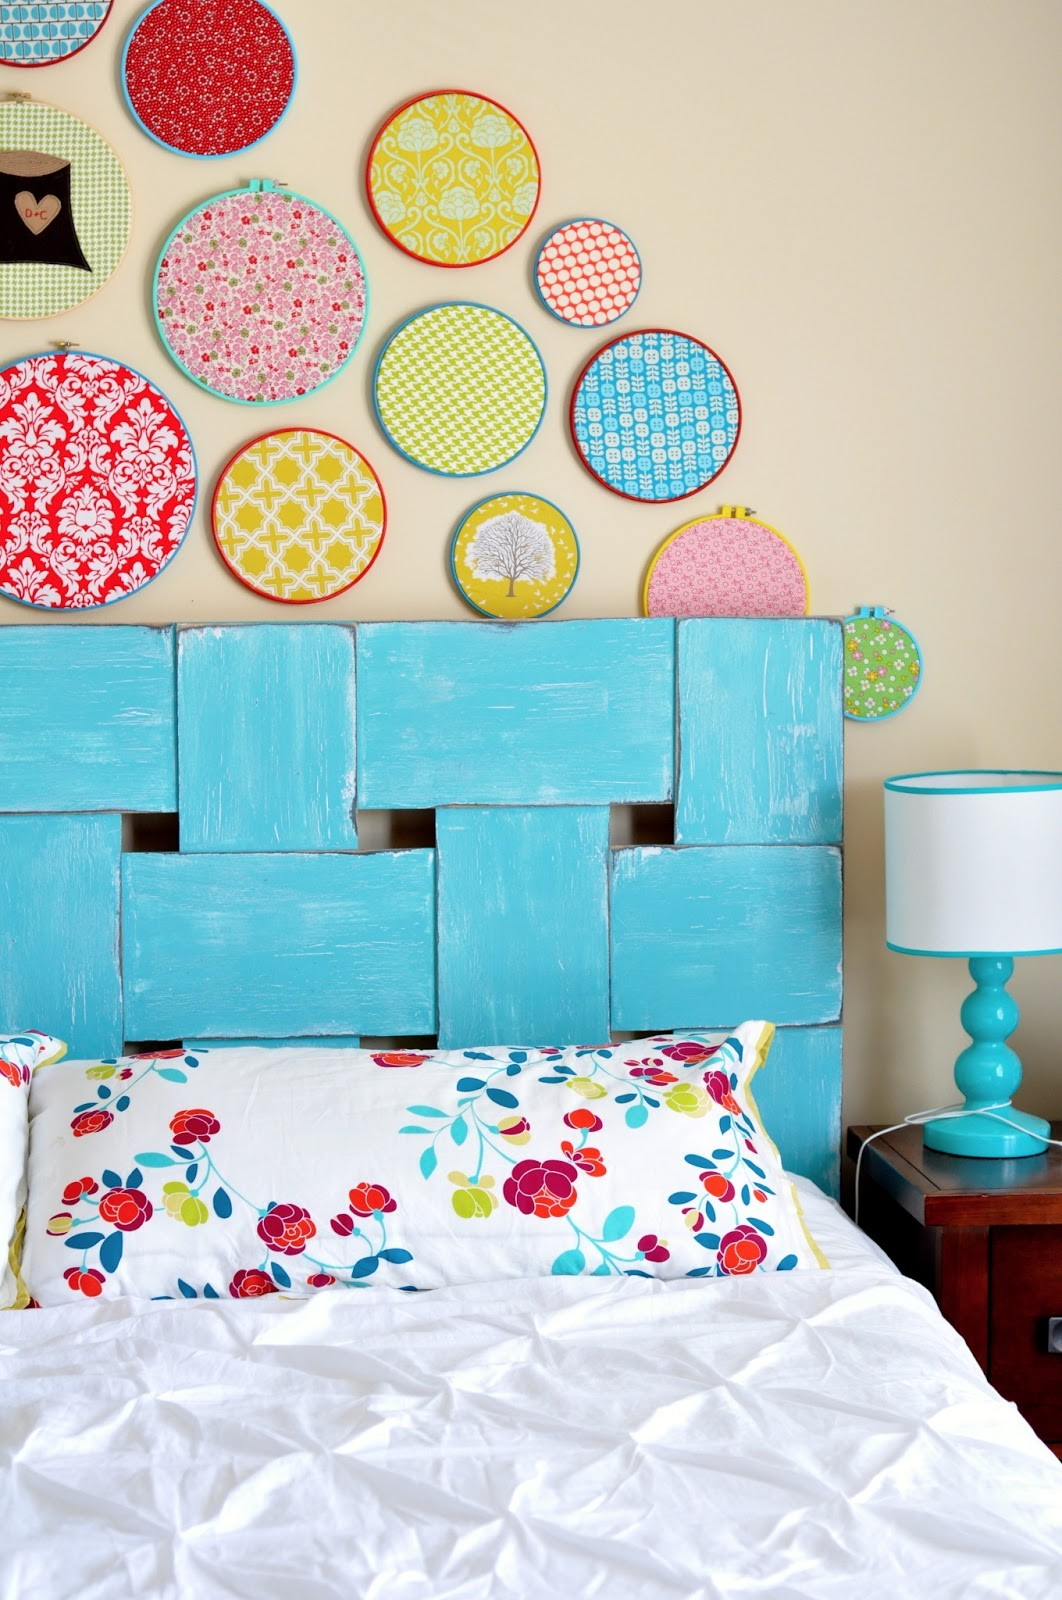 Woven style wood headboard design in a bright blue colour